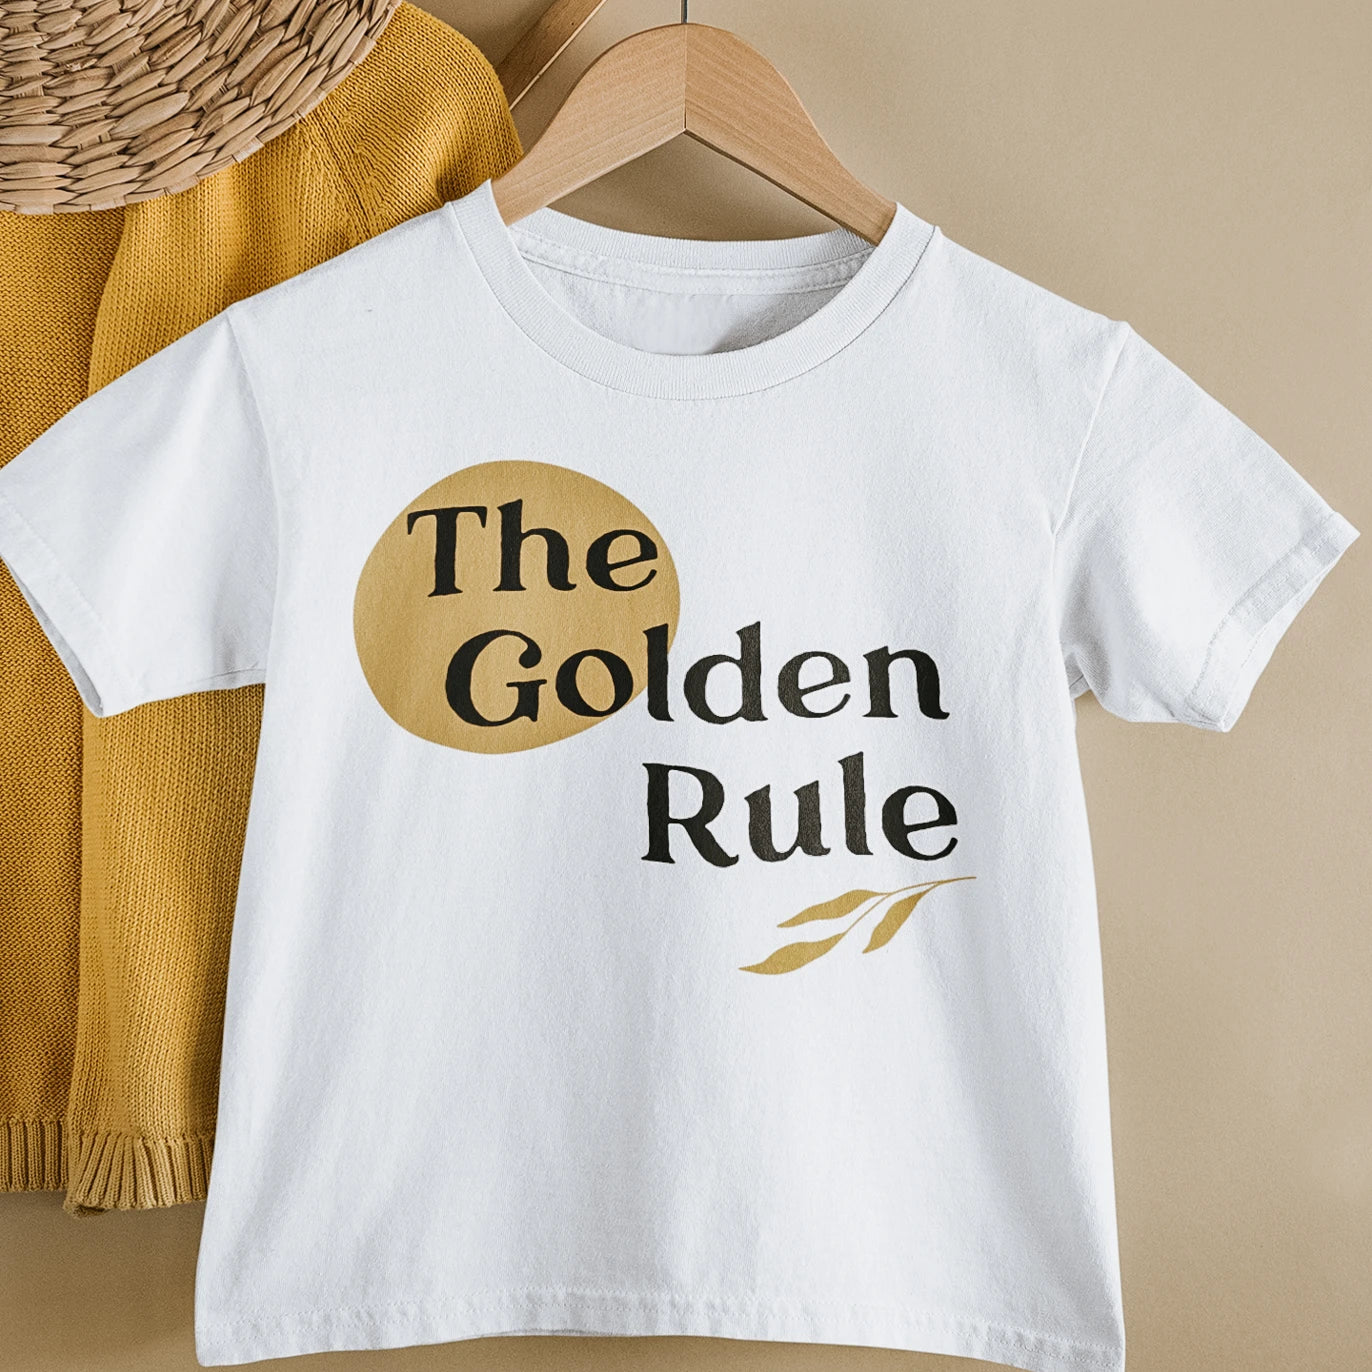 white tee shirt that says the golden rule on it